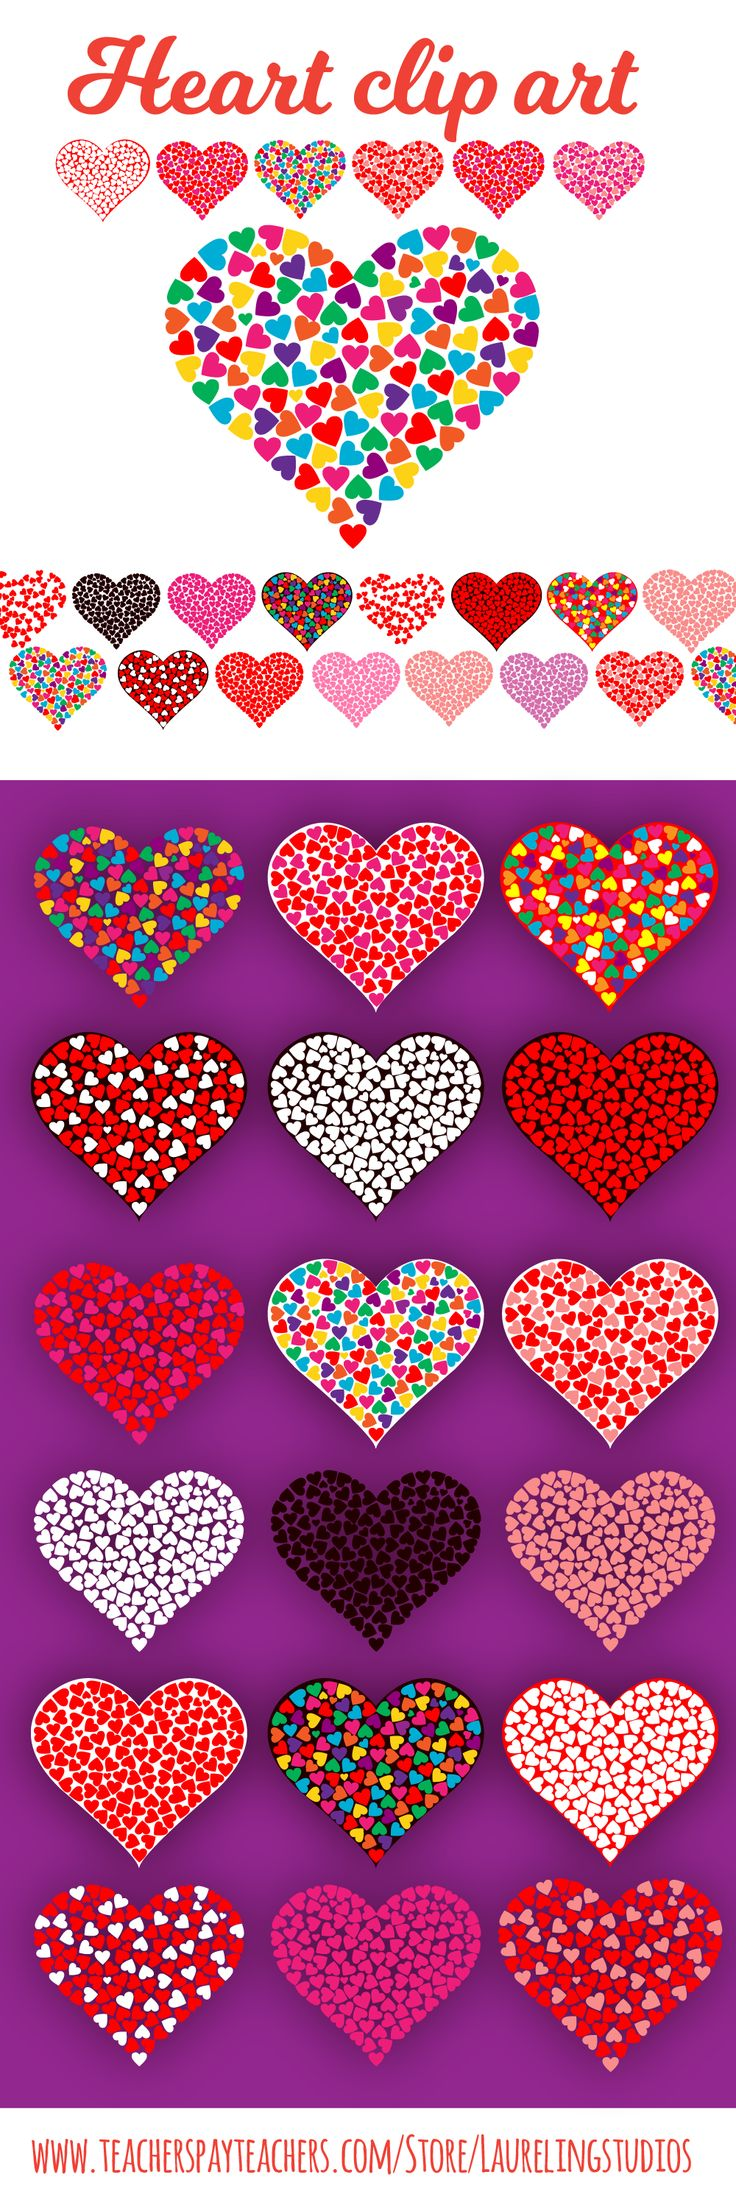 Colorful digital clipart heart .png files for Valentine's Day! https://www.teacherspayteachers.com/Product/heart-clipart-for-Valentines-Day-or-commercial-use-2990199